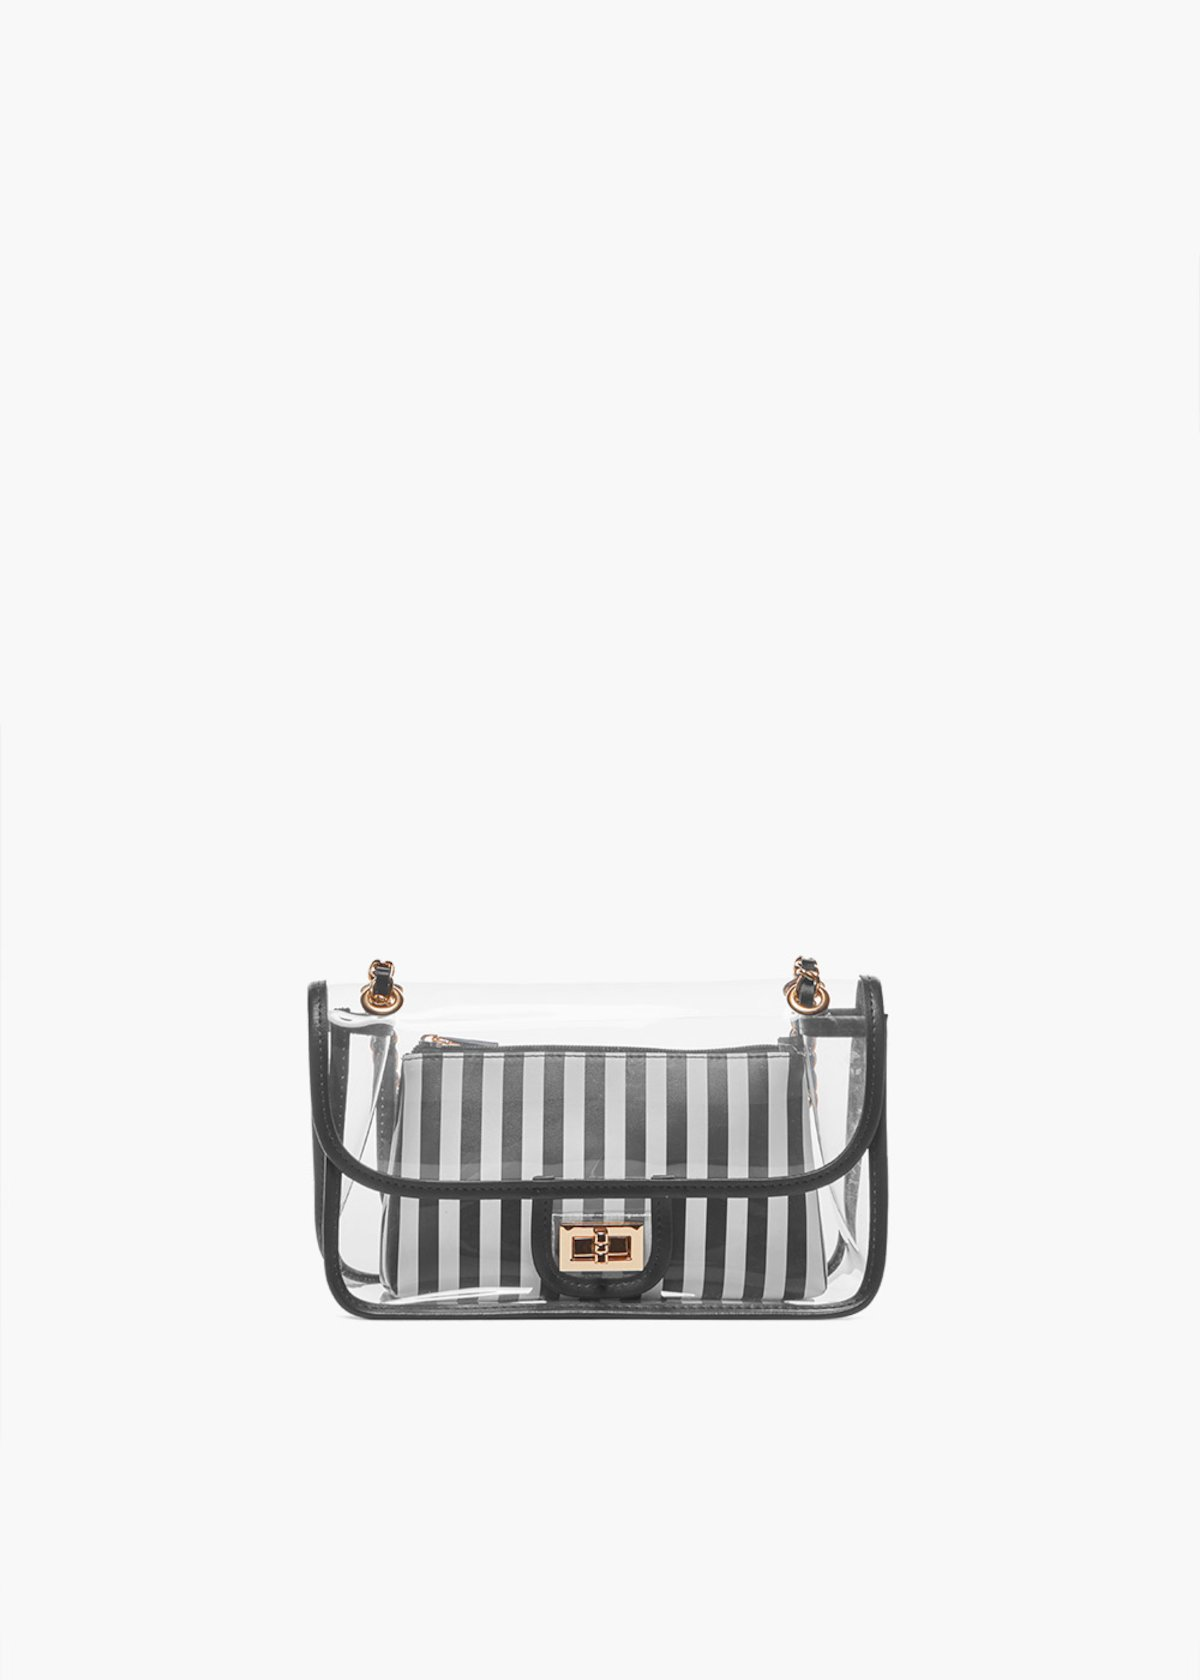 Shoulder bag Bradley trasparente - Black / White Stripes - Donna - Immagine categoria